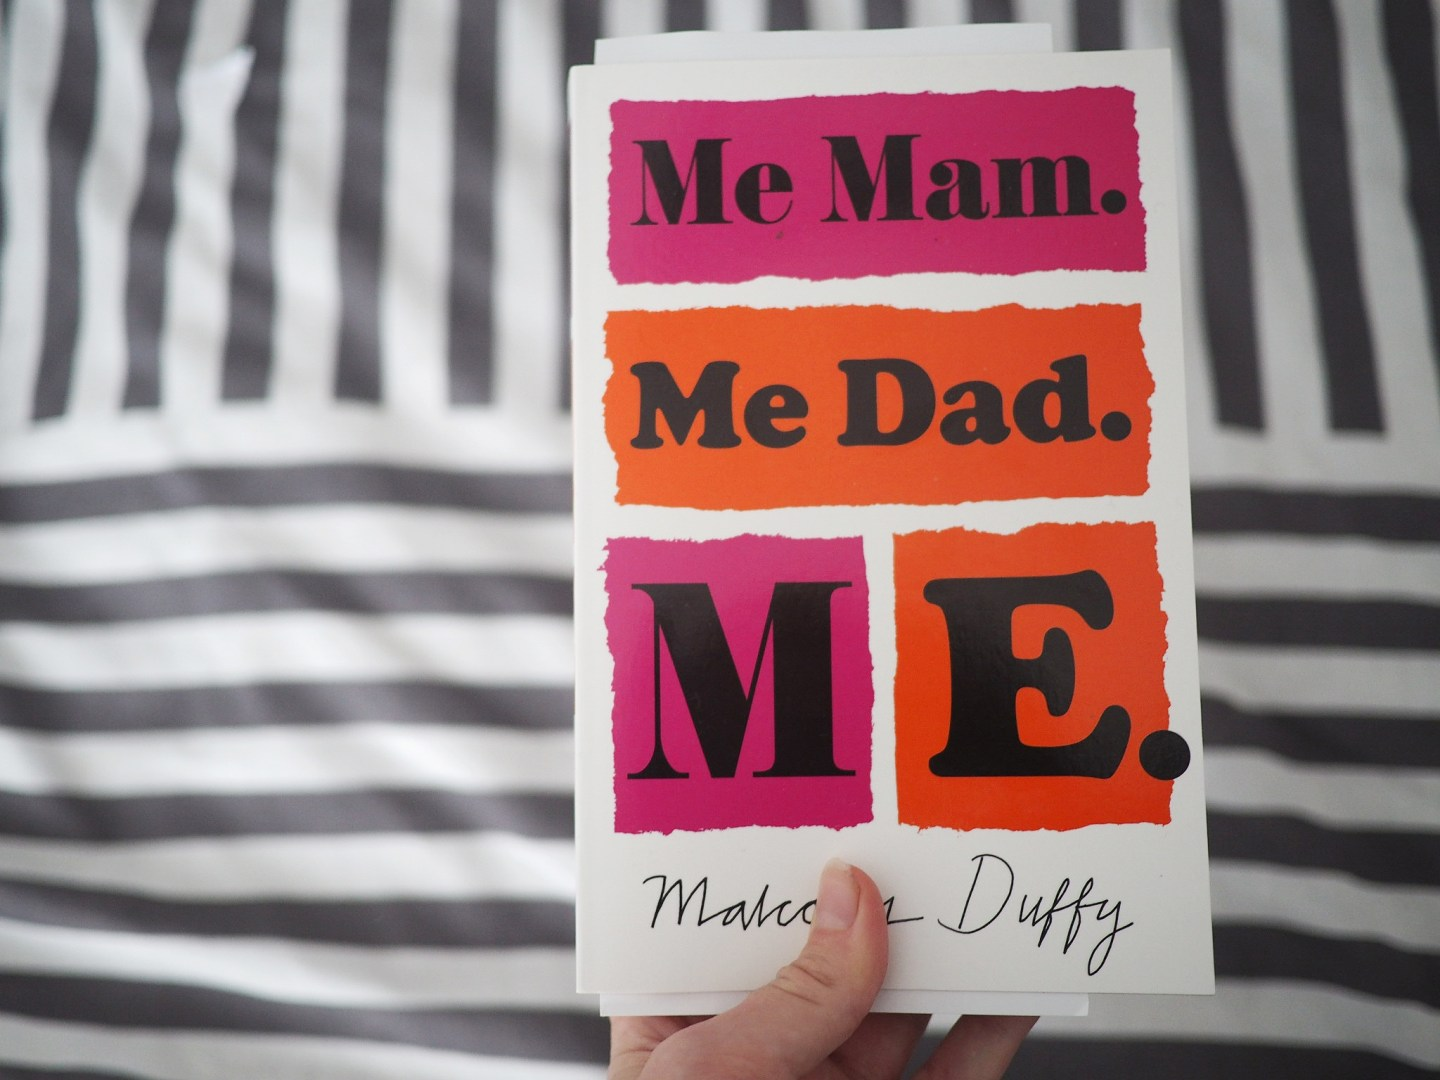 Book review of Me Mam. Me Dad. Me by Malcolm Duffy